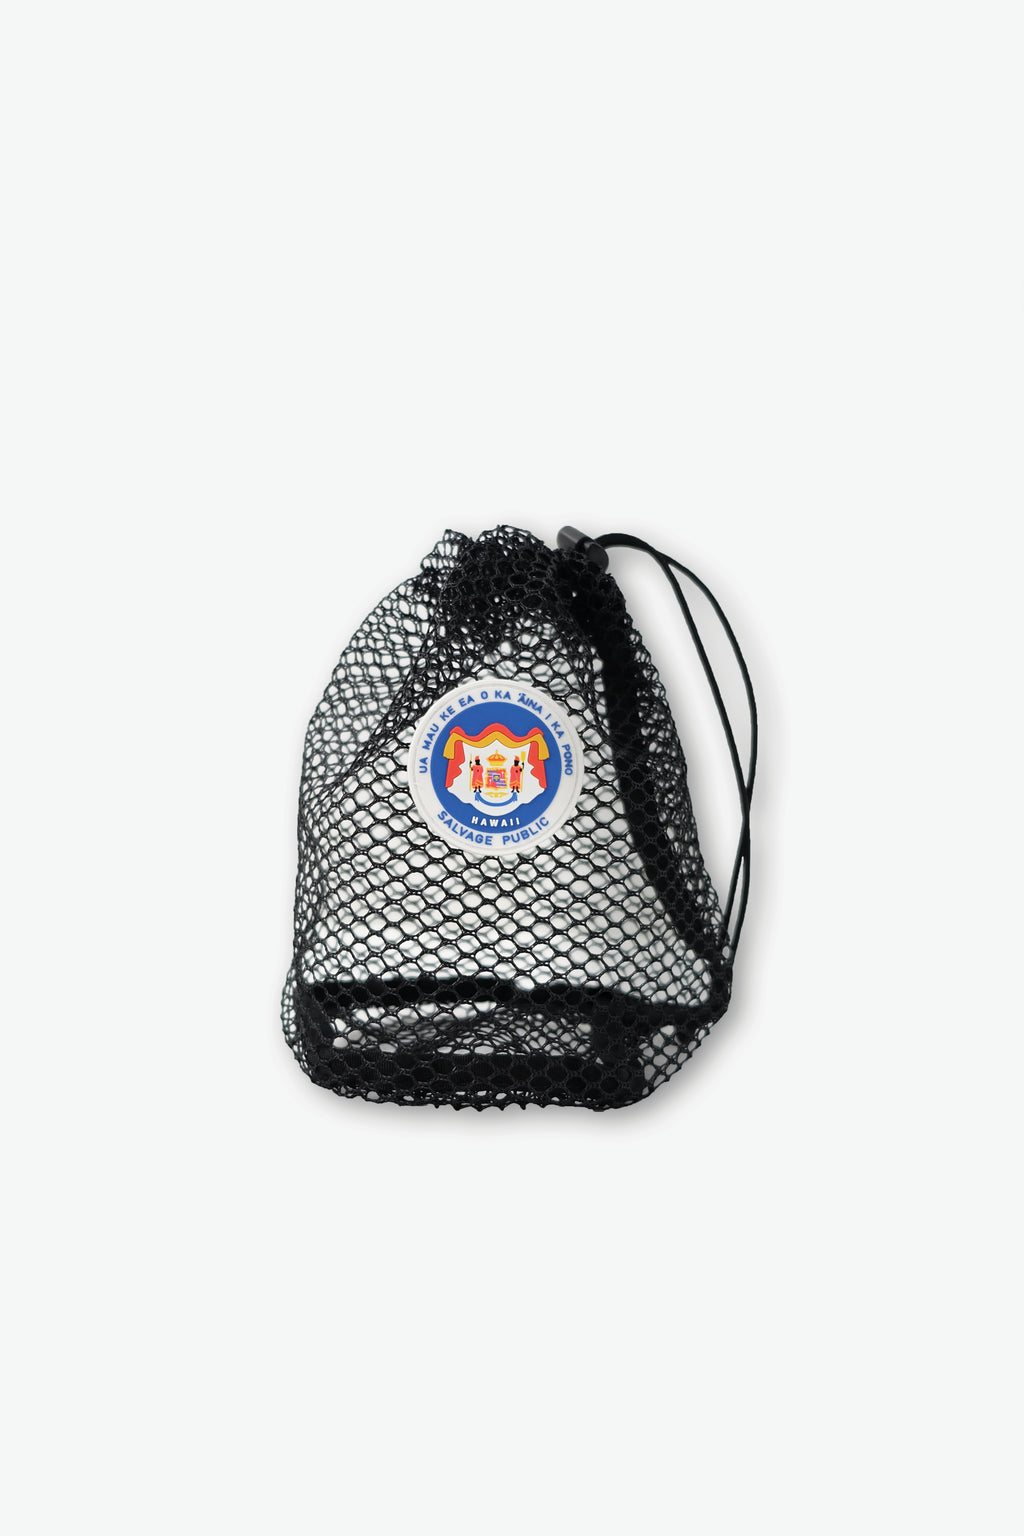 Poi Bag - Mesh Black